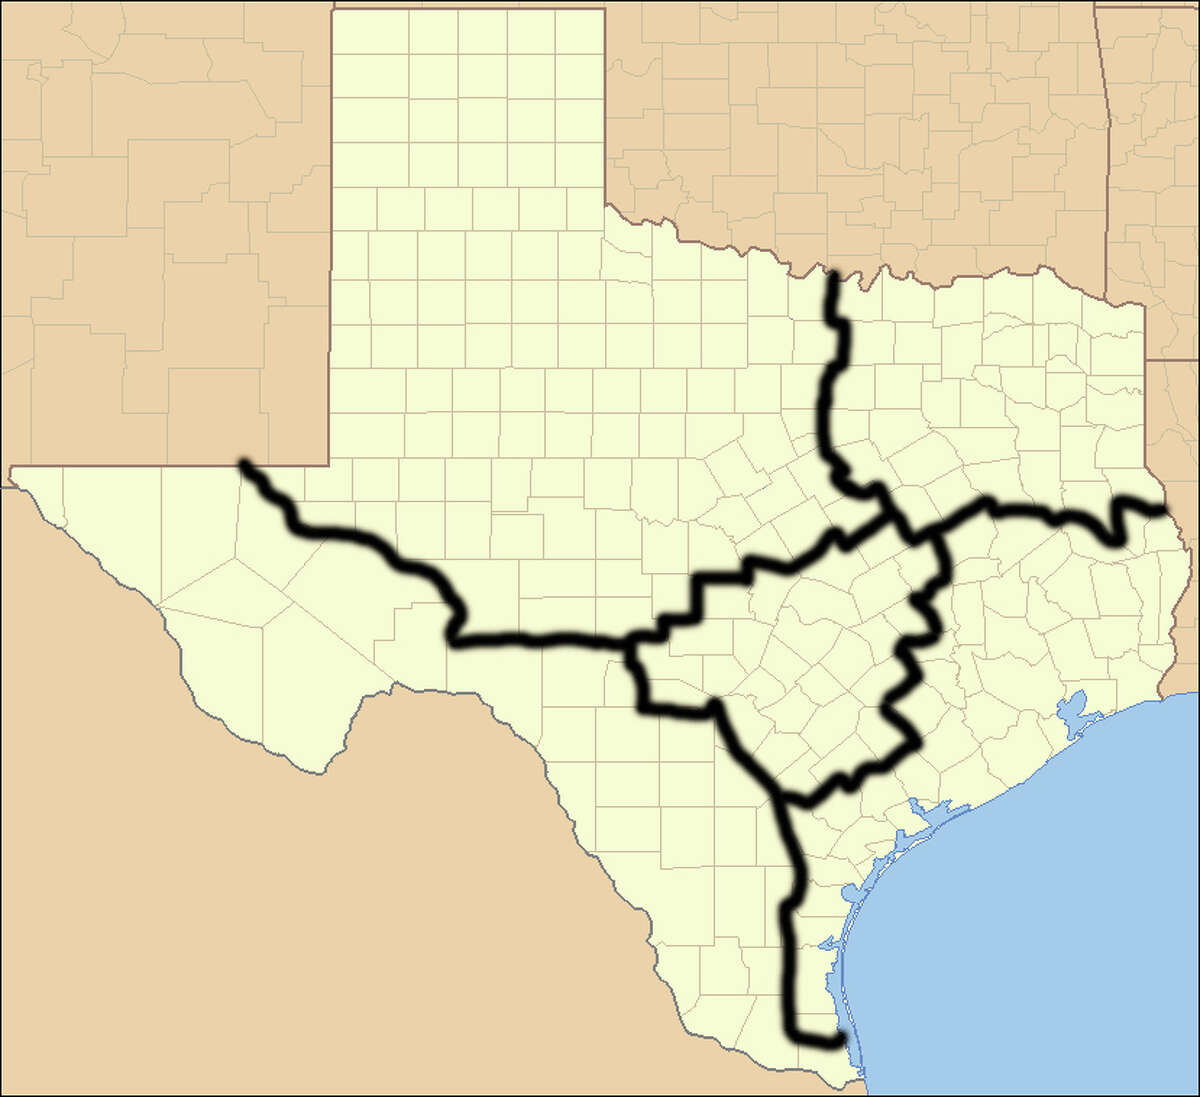 According to the 1845 Joint Resolution for Annexing Texas, we can divide ourselves into five different states if we choose. In 2009, analyst Nate Silver imagined a five-state solution based on the picture above. We decided to expand on that idea to see the different traits of each